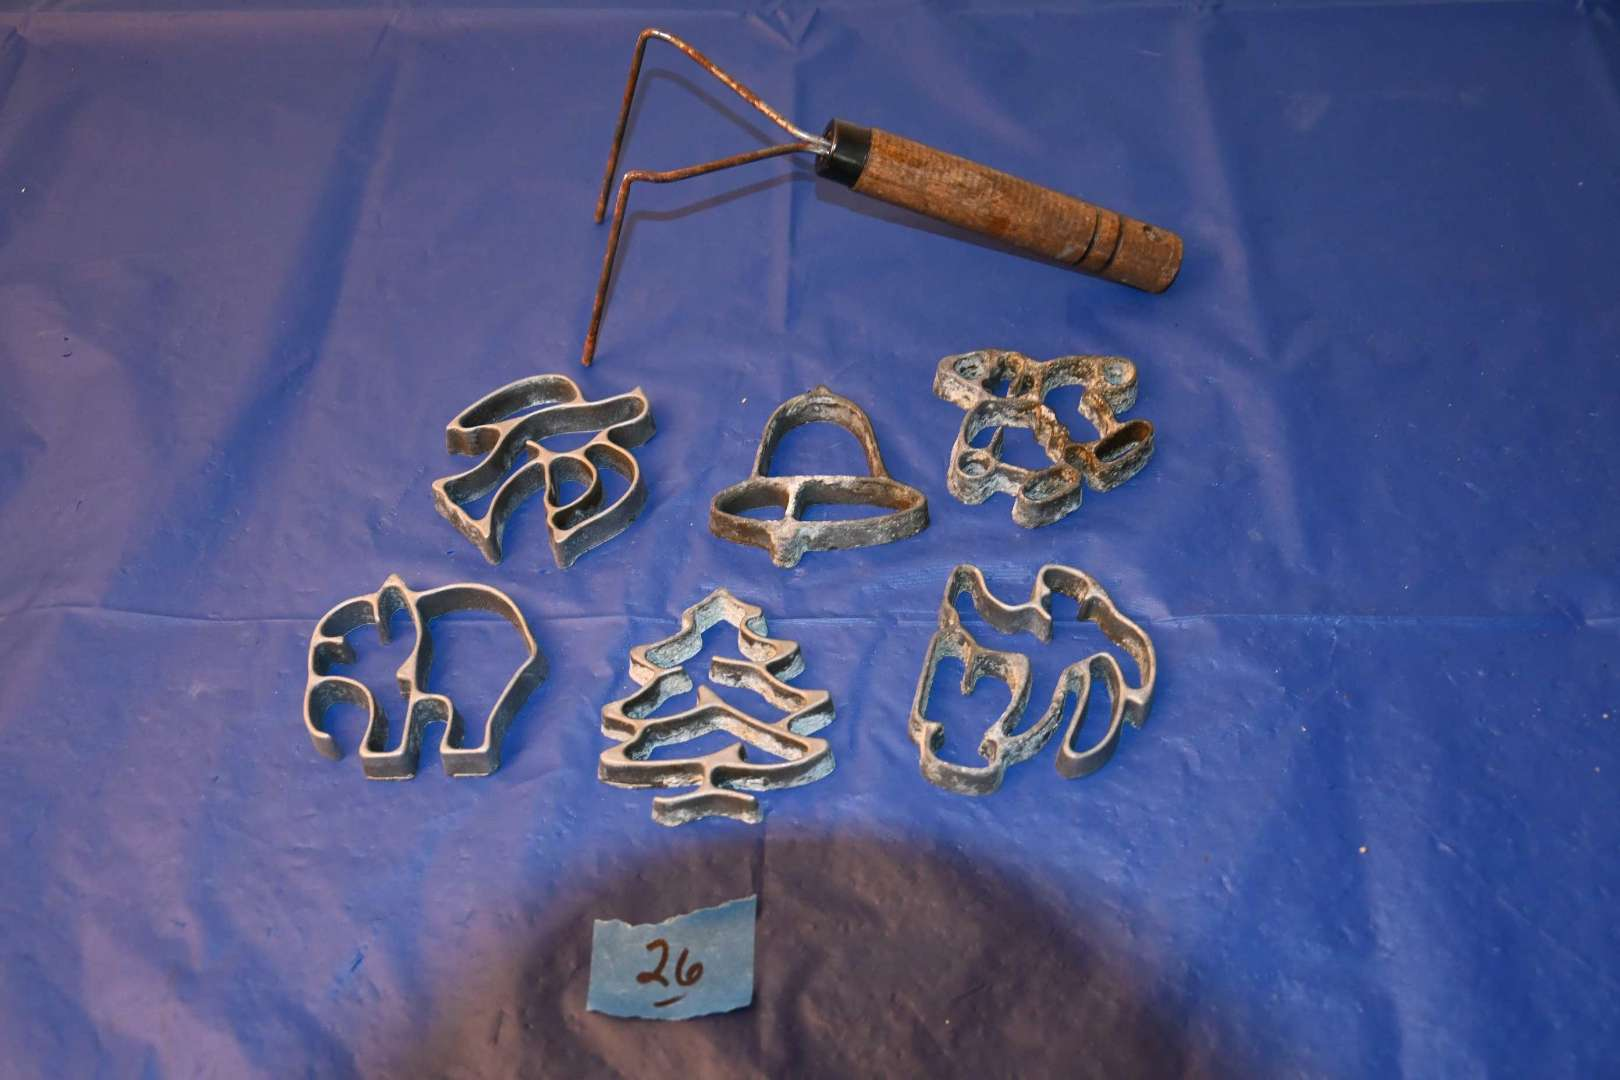 Lot # 26 Vintage aluminum molds with handle